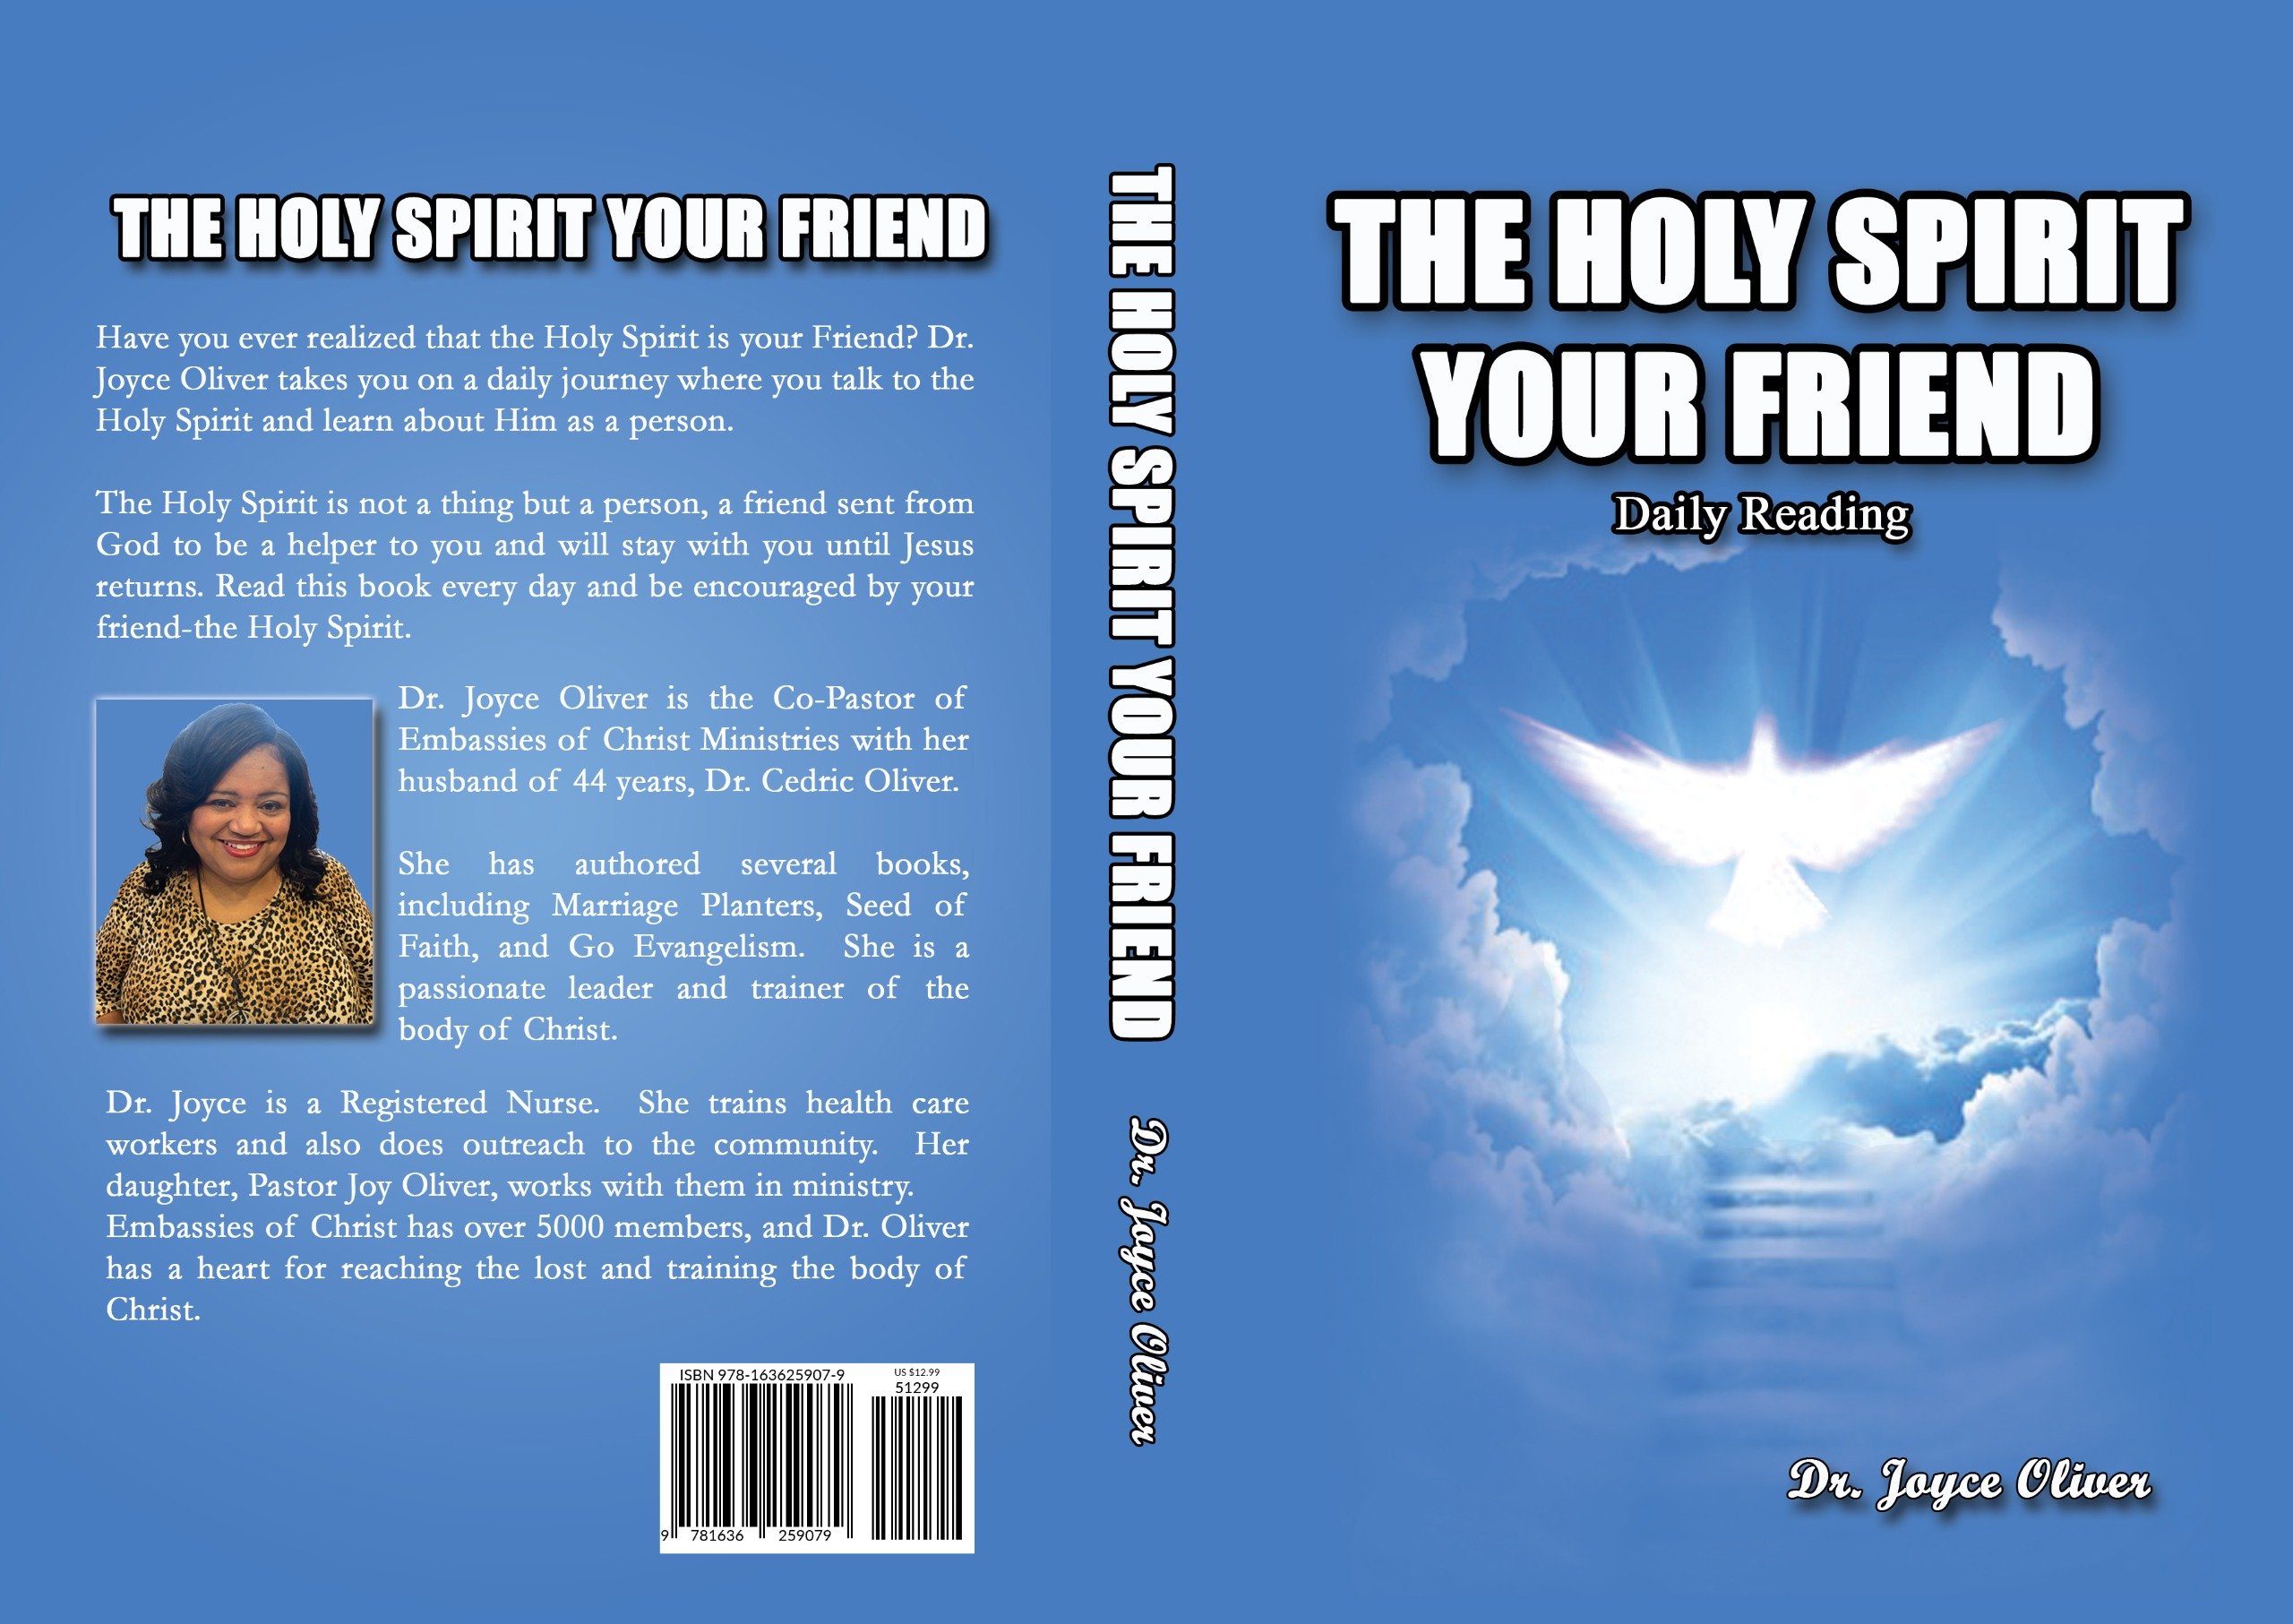 The Holy Spirit Your Friend - Daily Reading (E-Book)